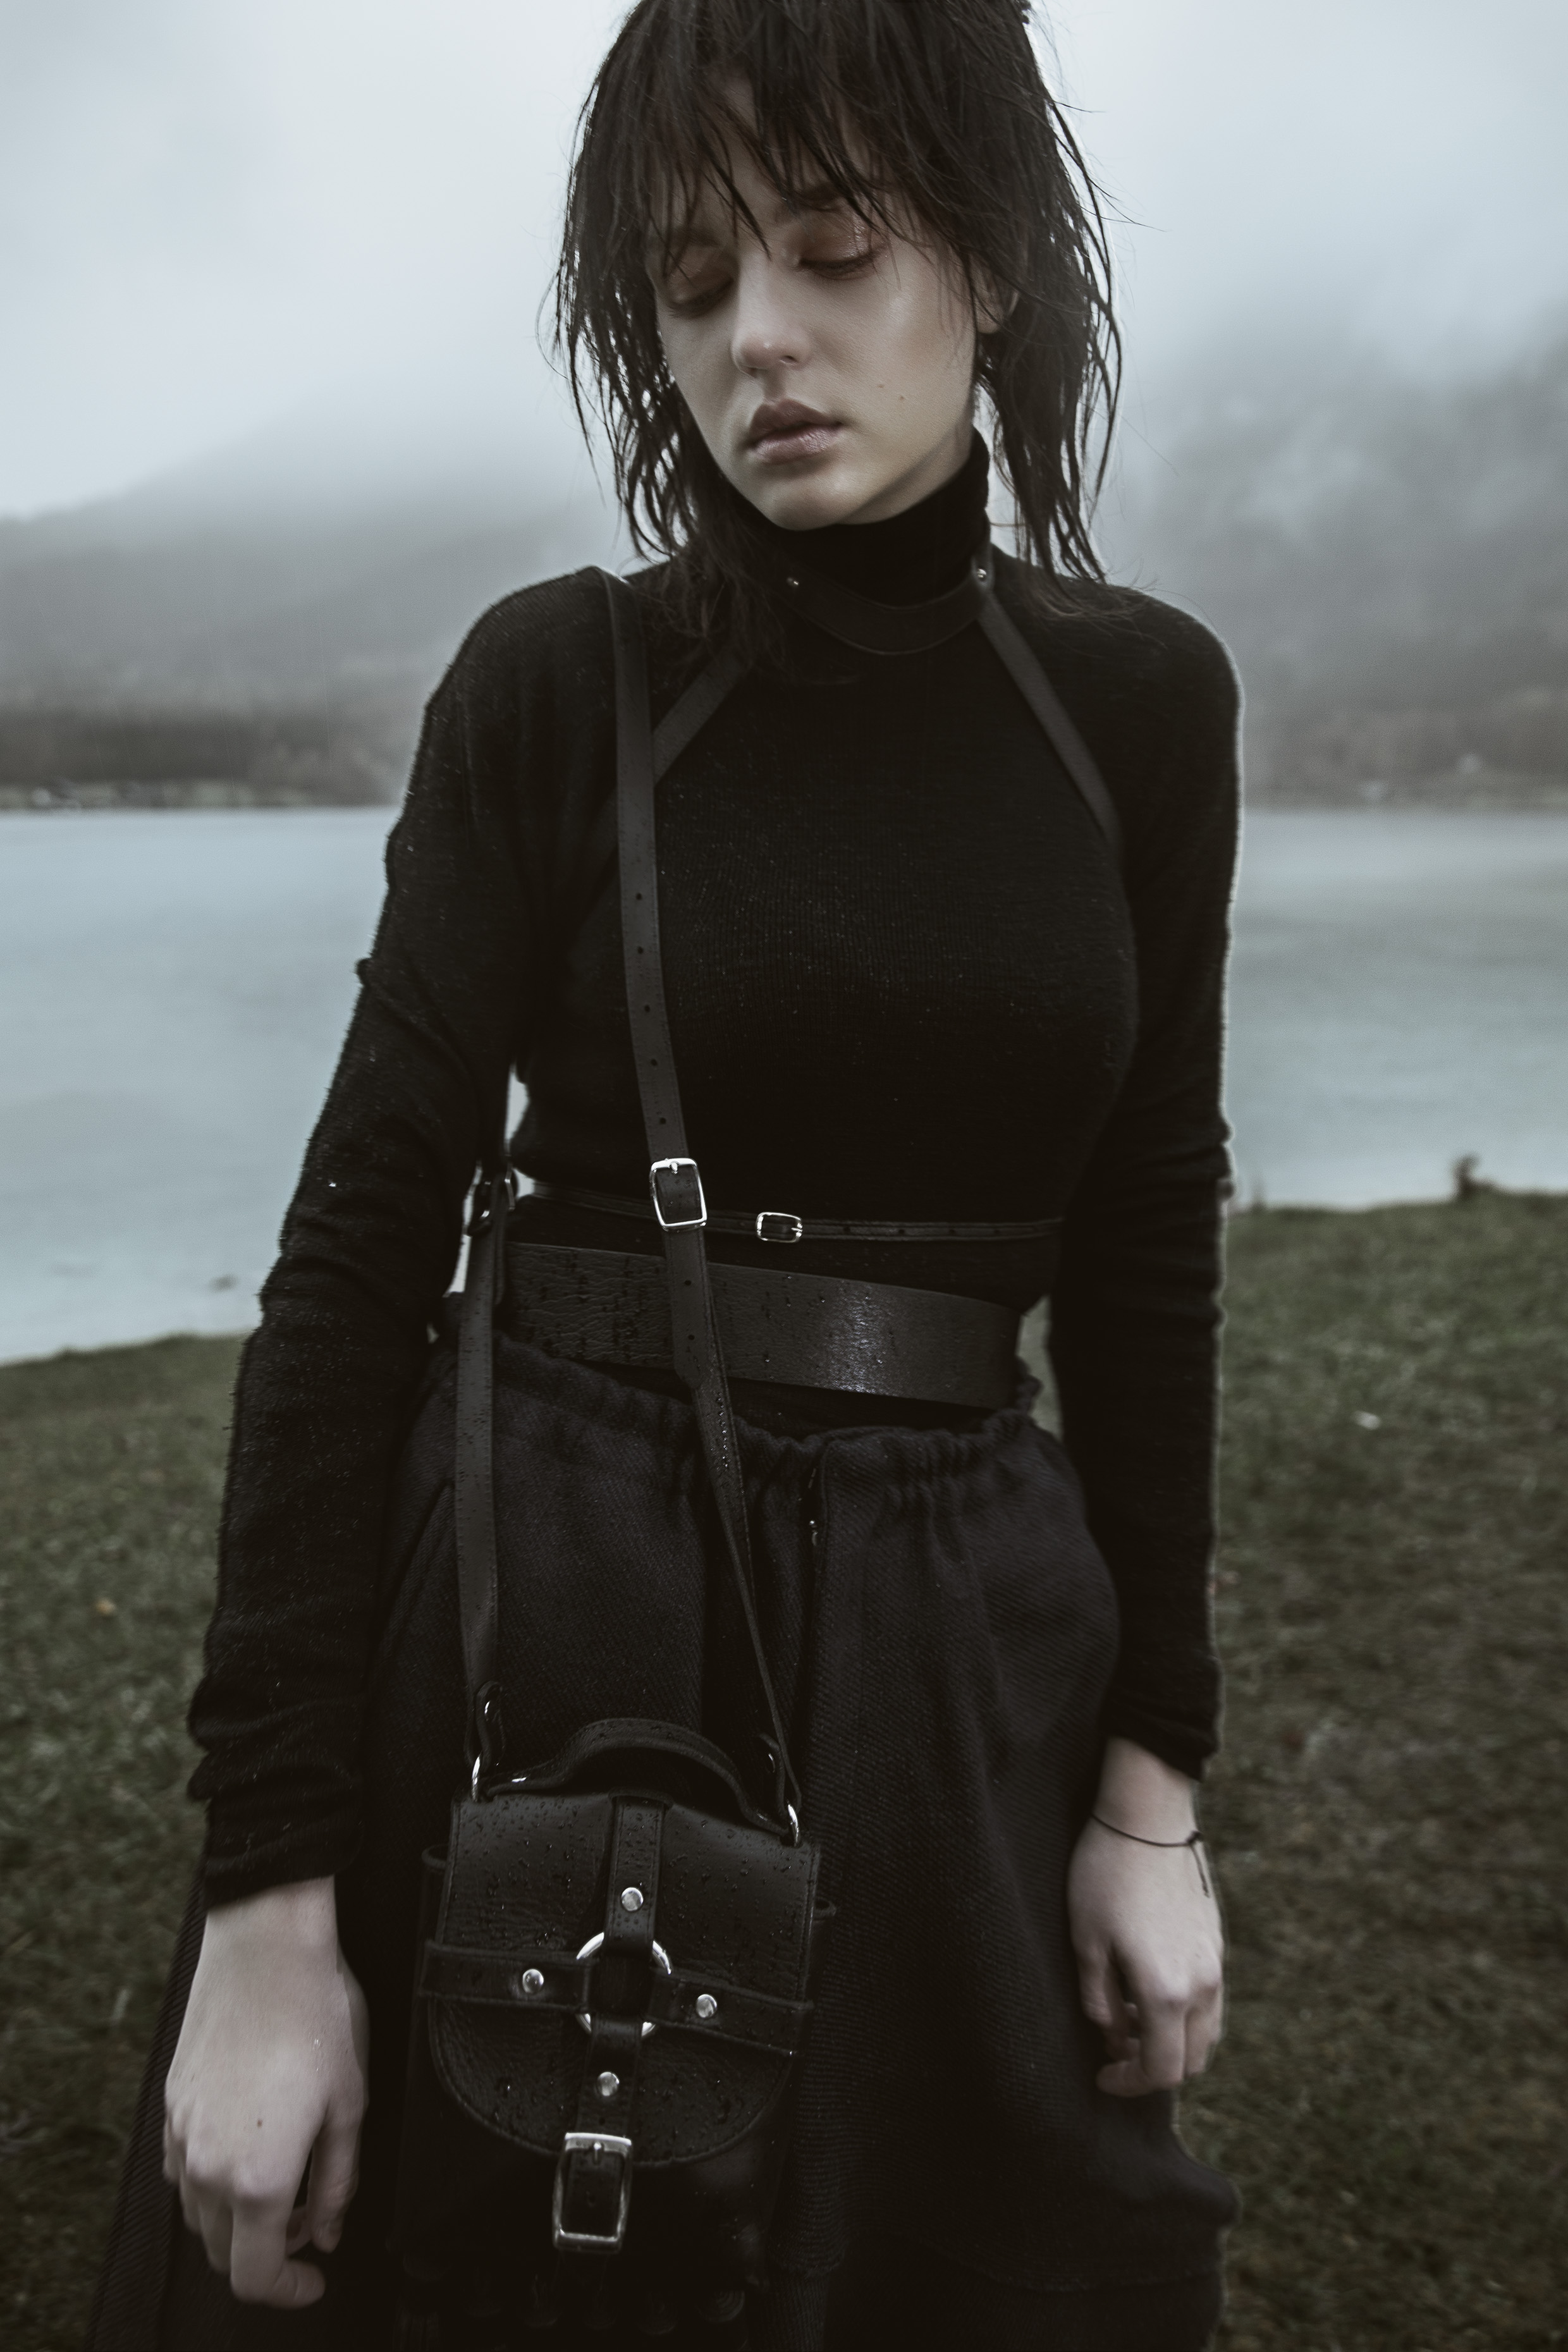 Black merinos turtle neck by Lanvin |Elastic A skirt by Moon Young Hee |Leather harness and Tassel bondage tassel handbag by Zana Bayne |Textured leather belt by Givenchy